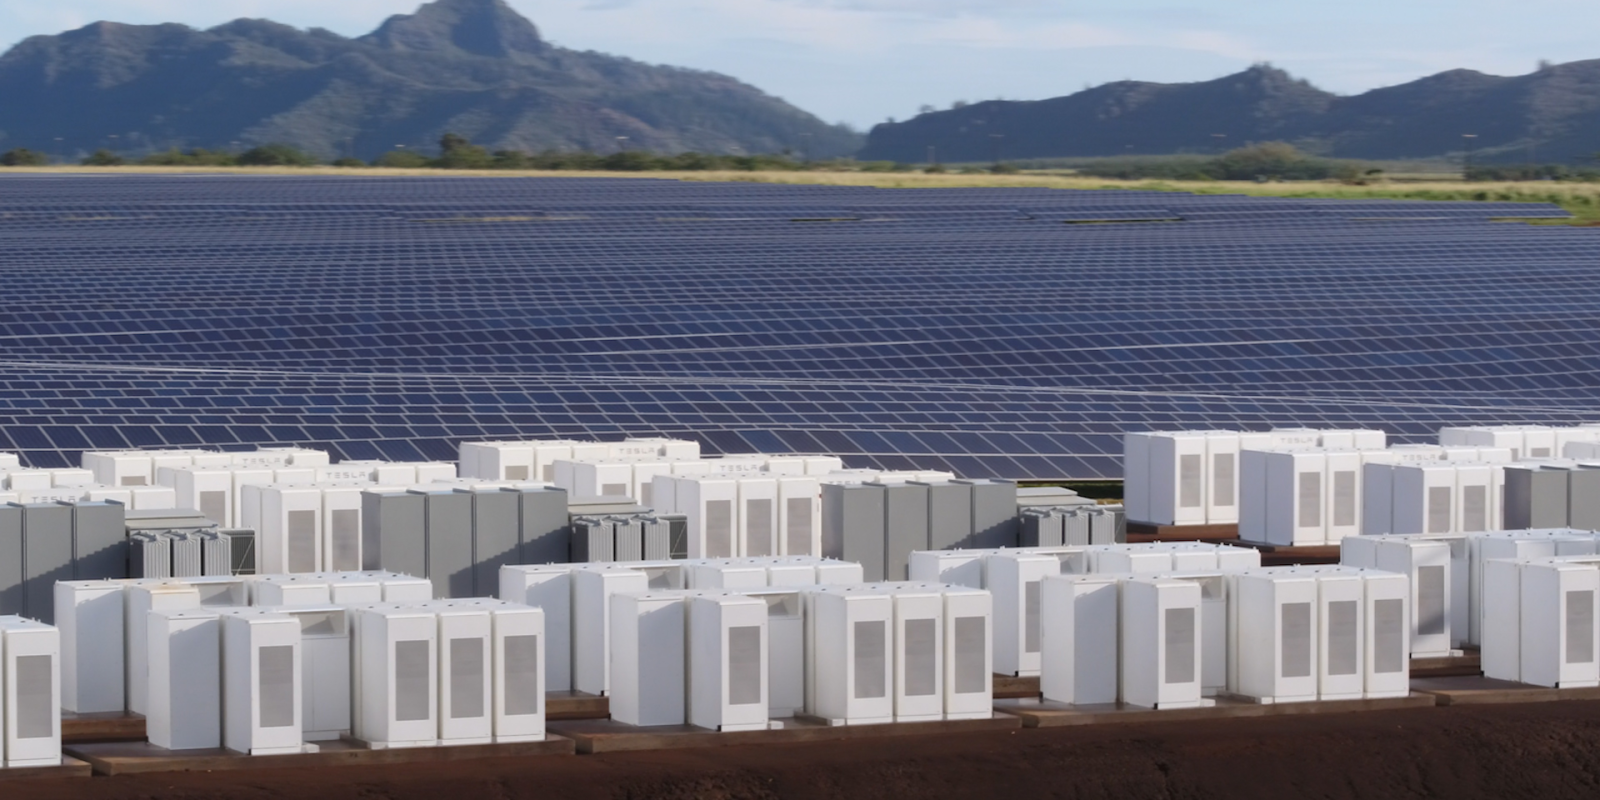 Solar + batteries prepping to take over 10GW of US natural gas peaker power plant market